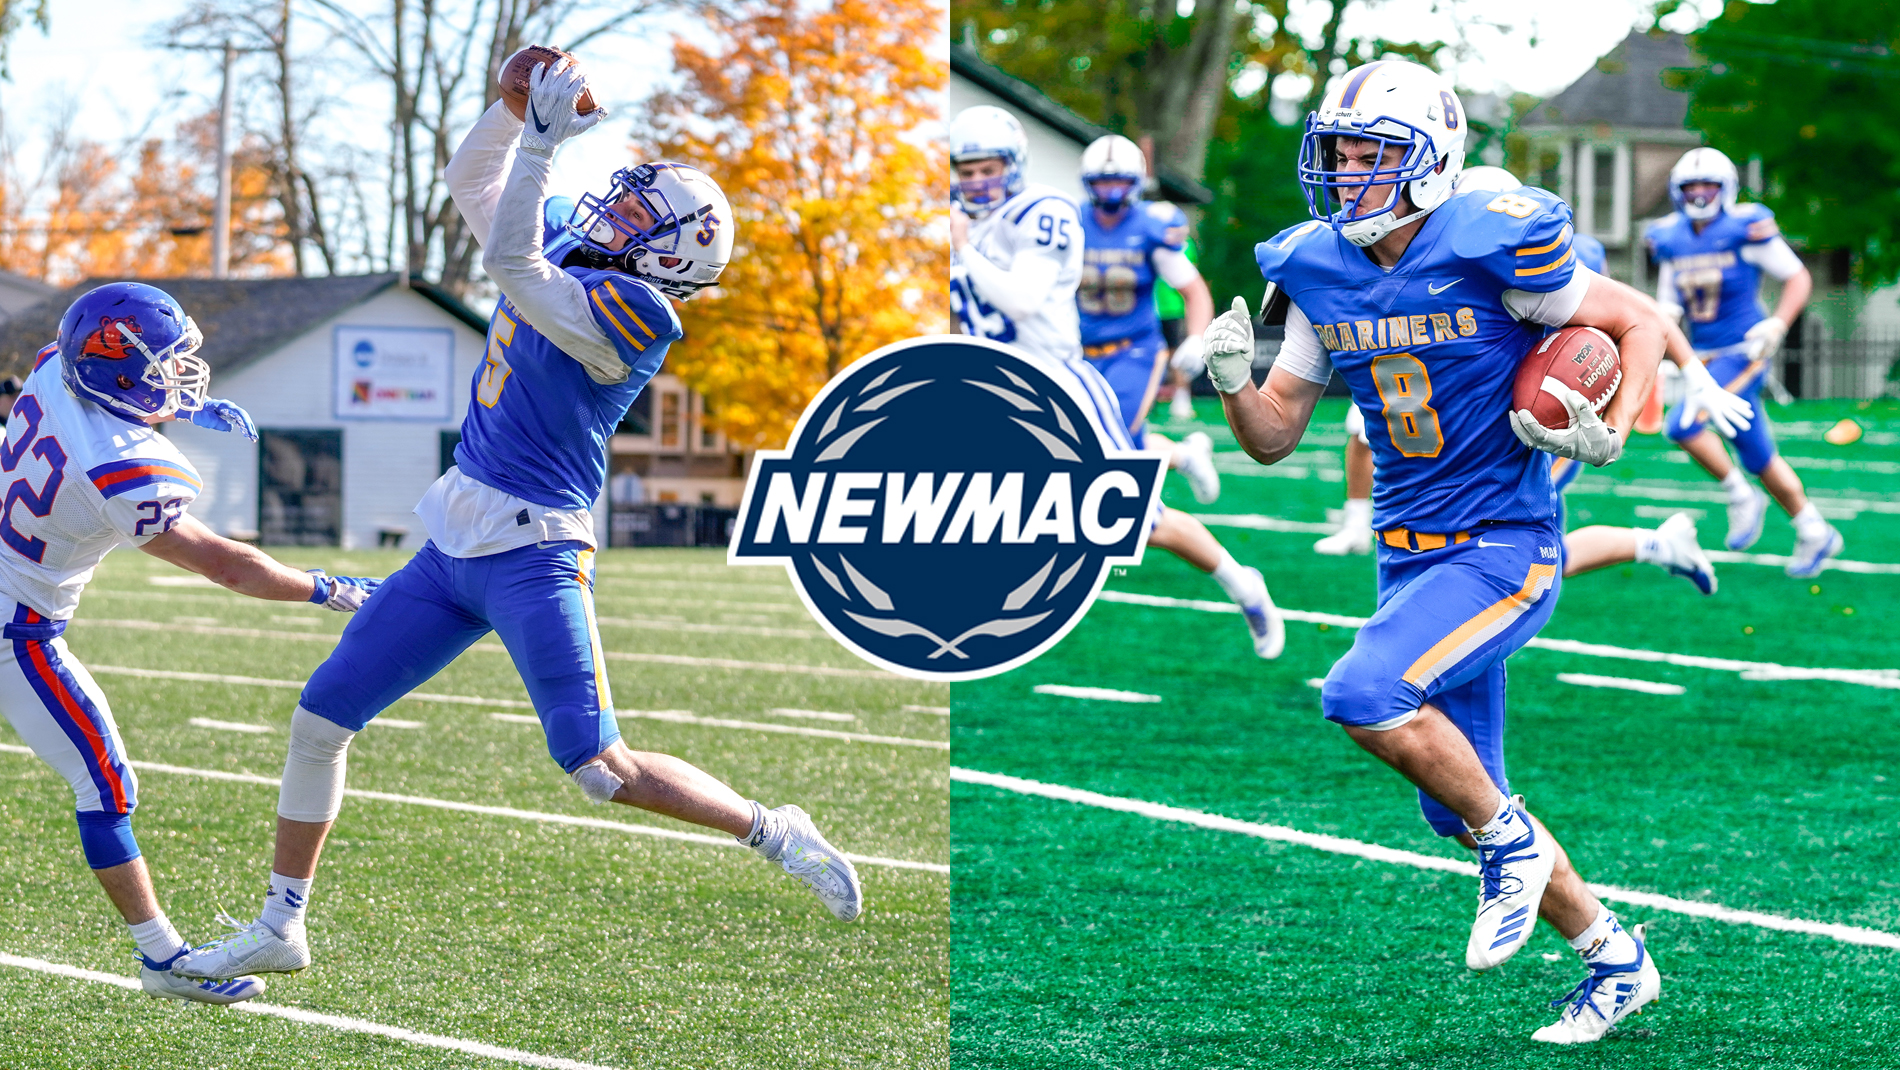 Casale and Brannon Land on All-NEWMAC Teams